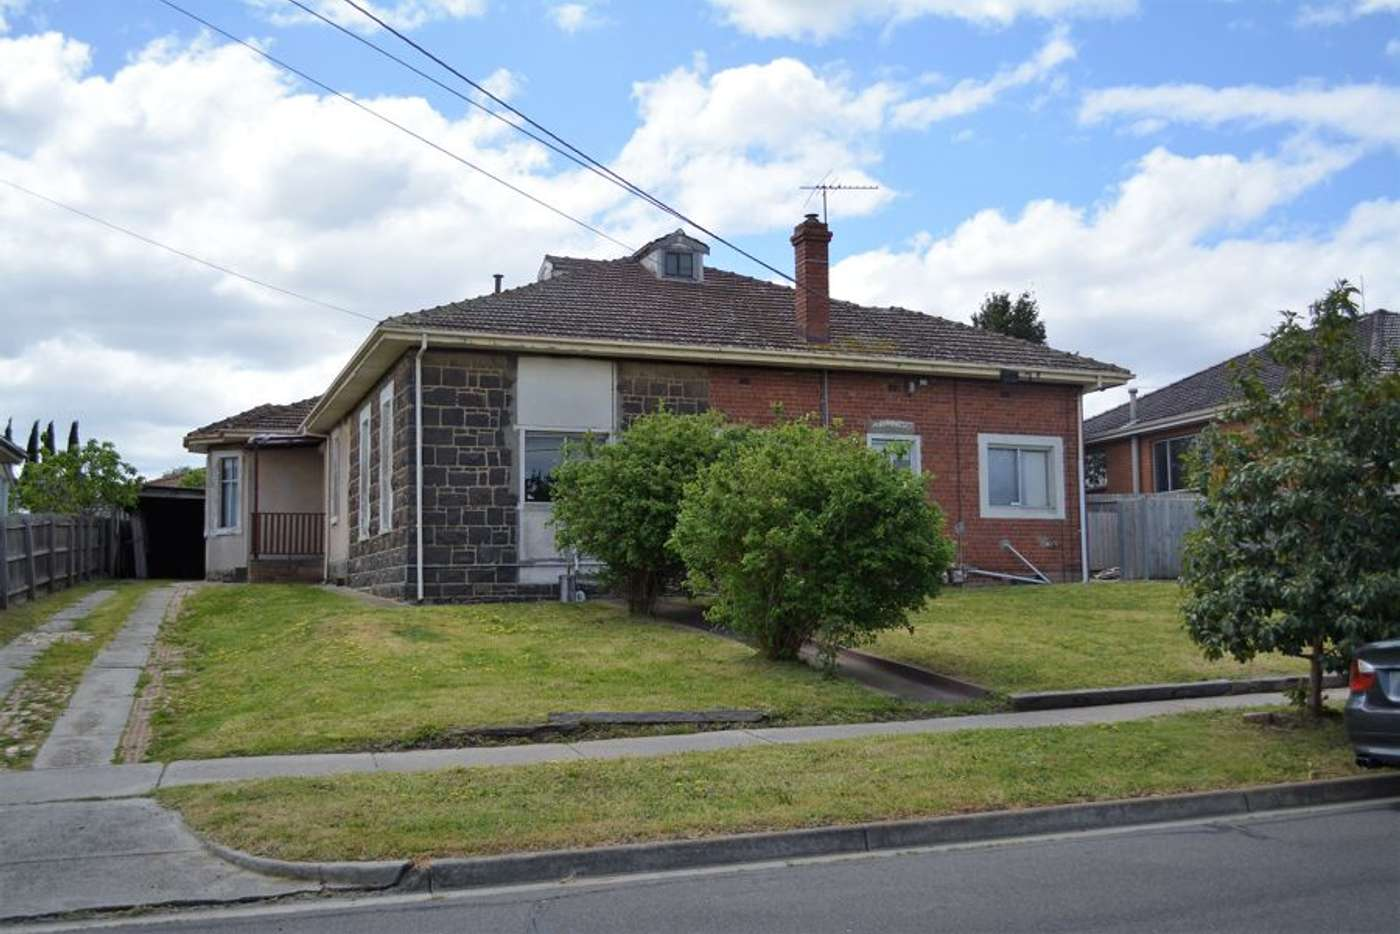 Main view of Homely house listing, 52 Summerhill Road, Reservoir VIC 3073